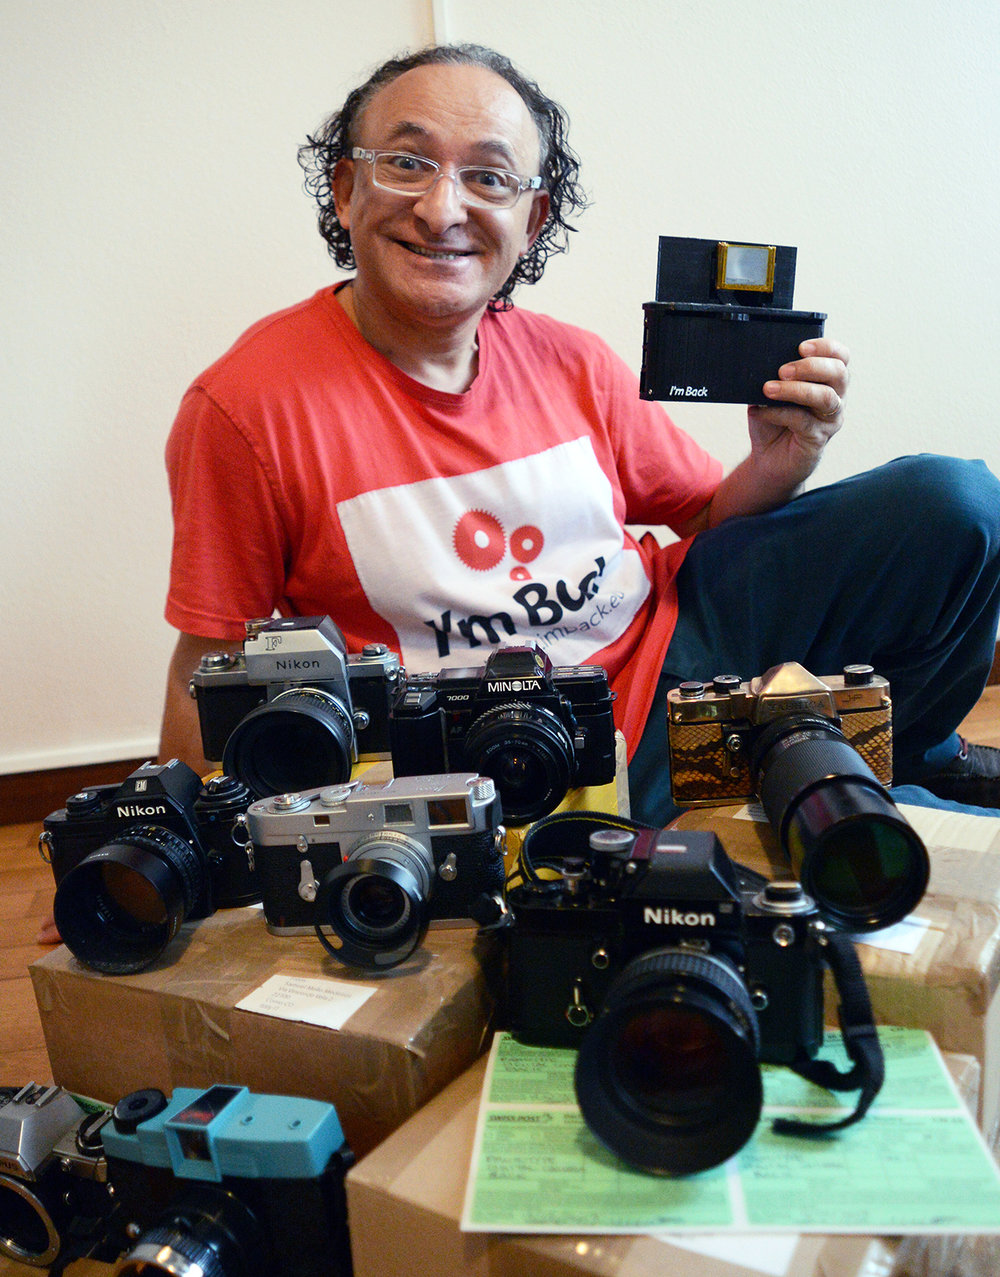 Designer and inventor Samuel Mello Madeiros with his collection of film cameras and the digital back he designed for them.